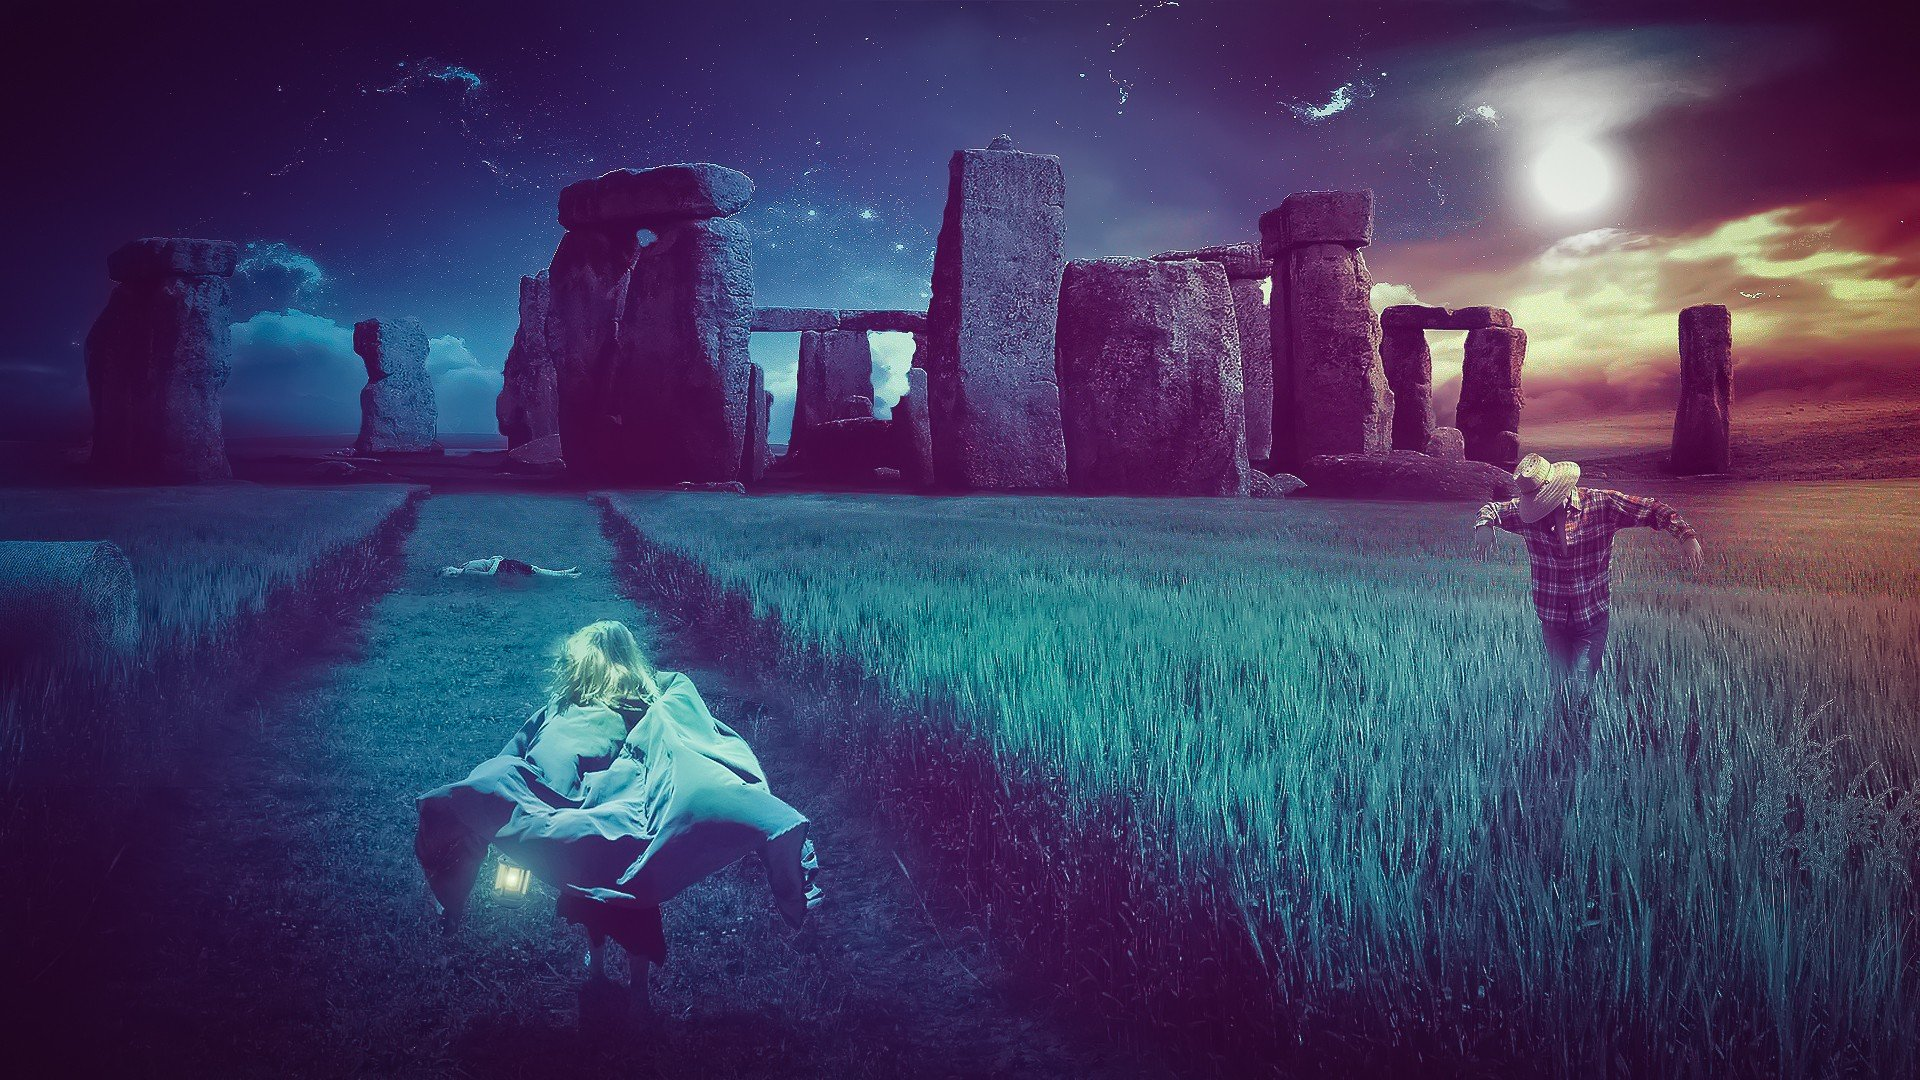 Night Alone Wallpaper Outer Space Night Grass